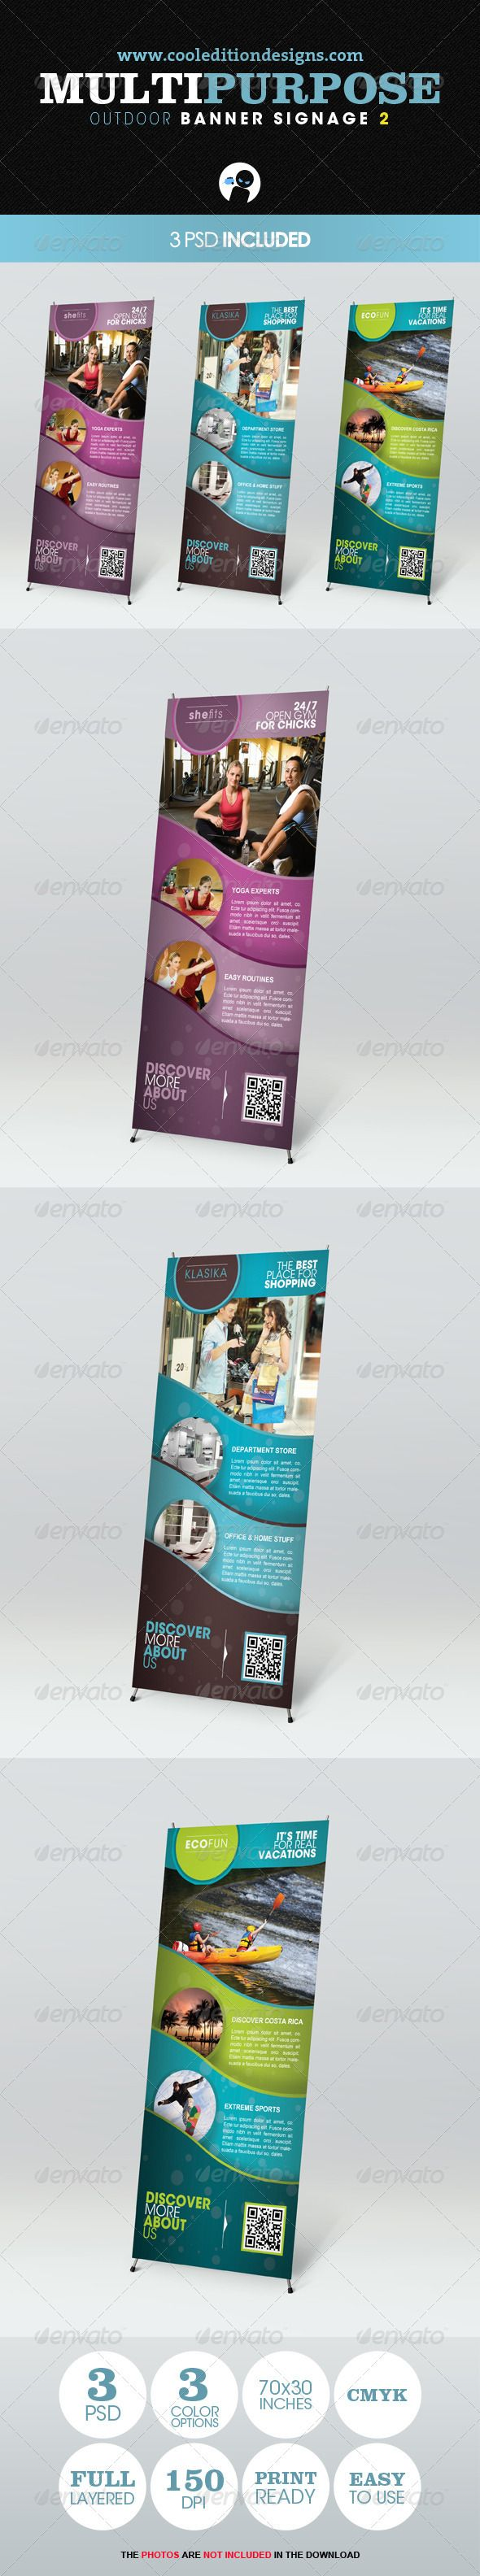 Multipurpose Outdoor Banner Signage 2 — Photoshop PSD #display #fashion • Available here → https://graphicriver.net/item/multipurpose-outdoor-banner-signage-2/2414364?ref=pxcr